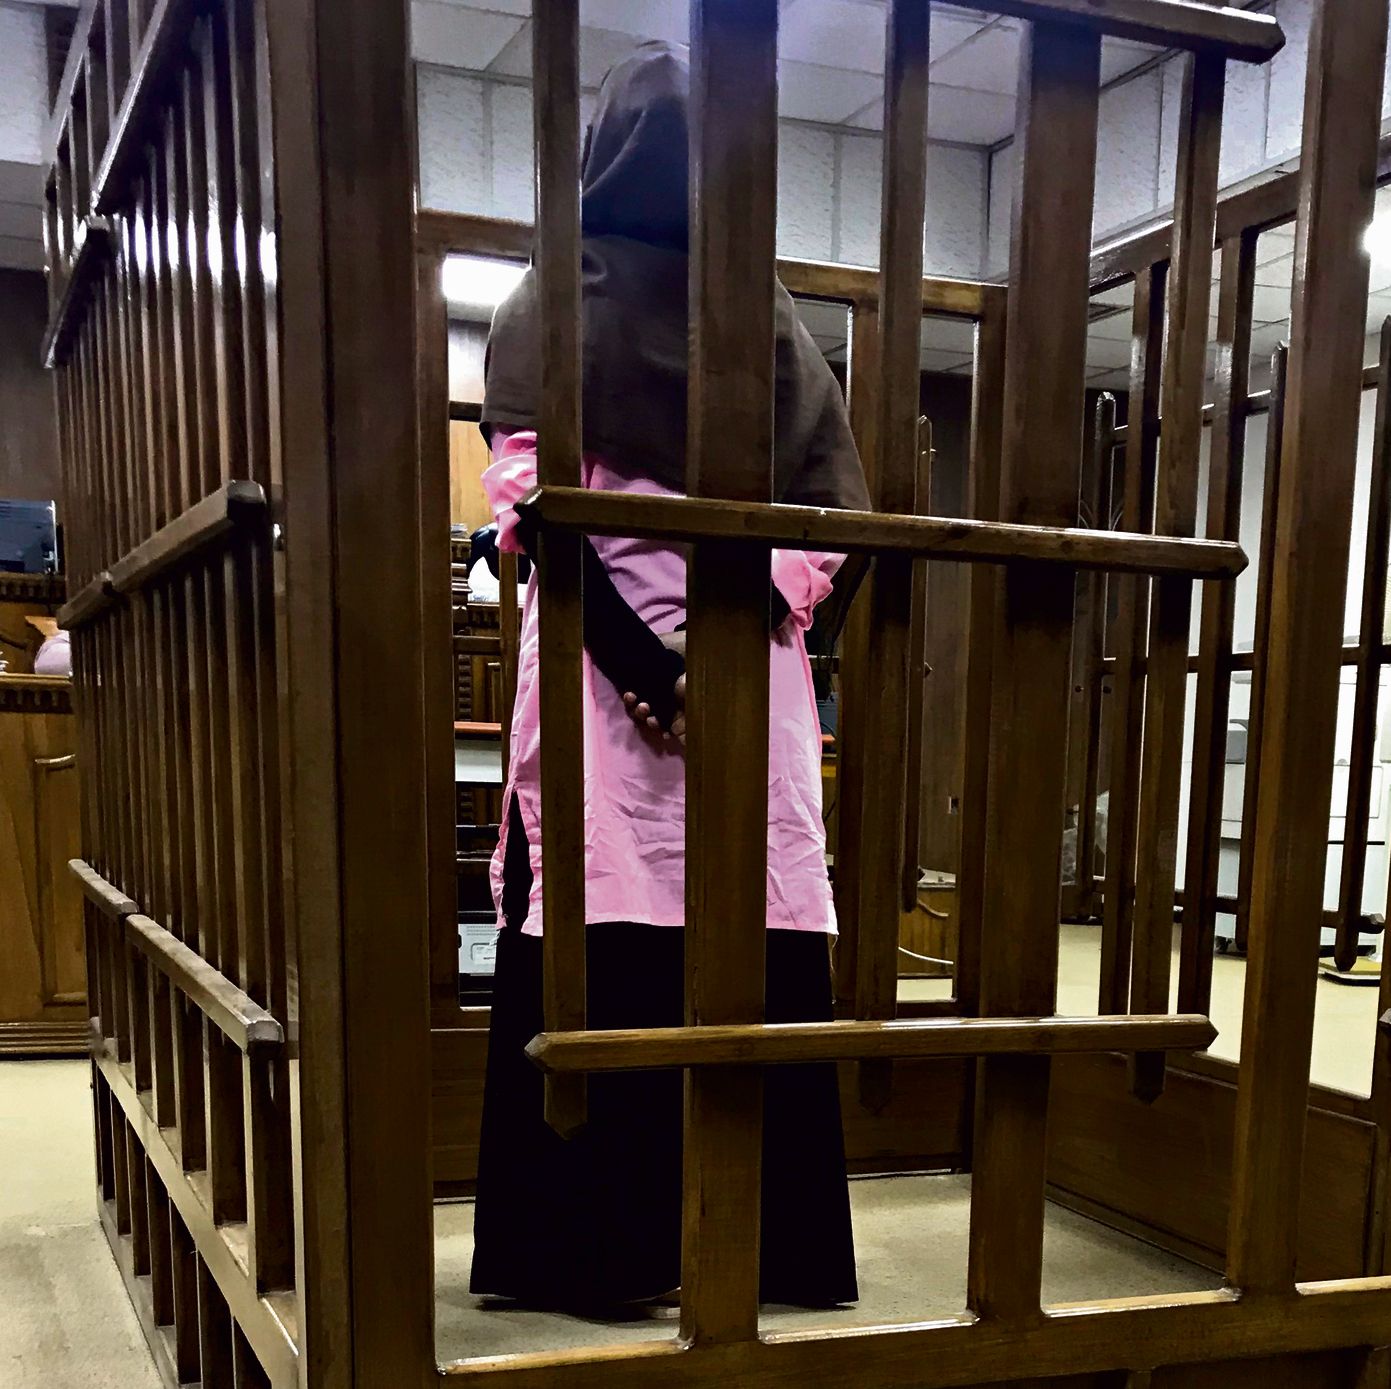 French ISIS member during her trial in Baghdad